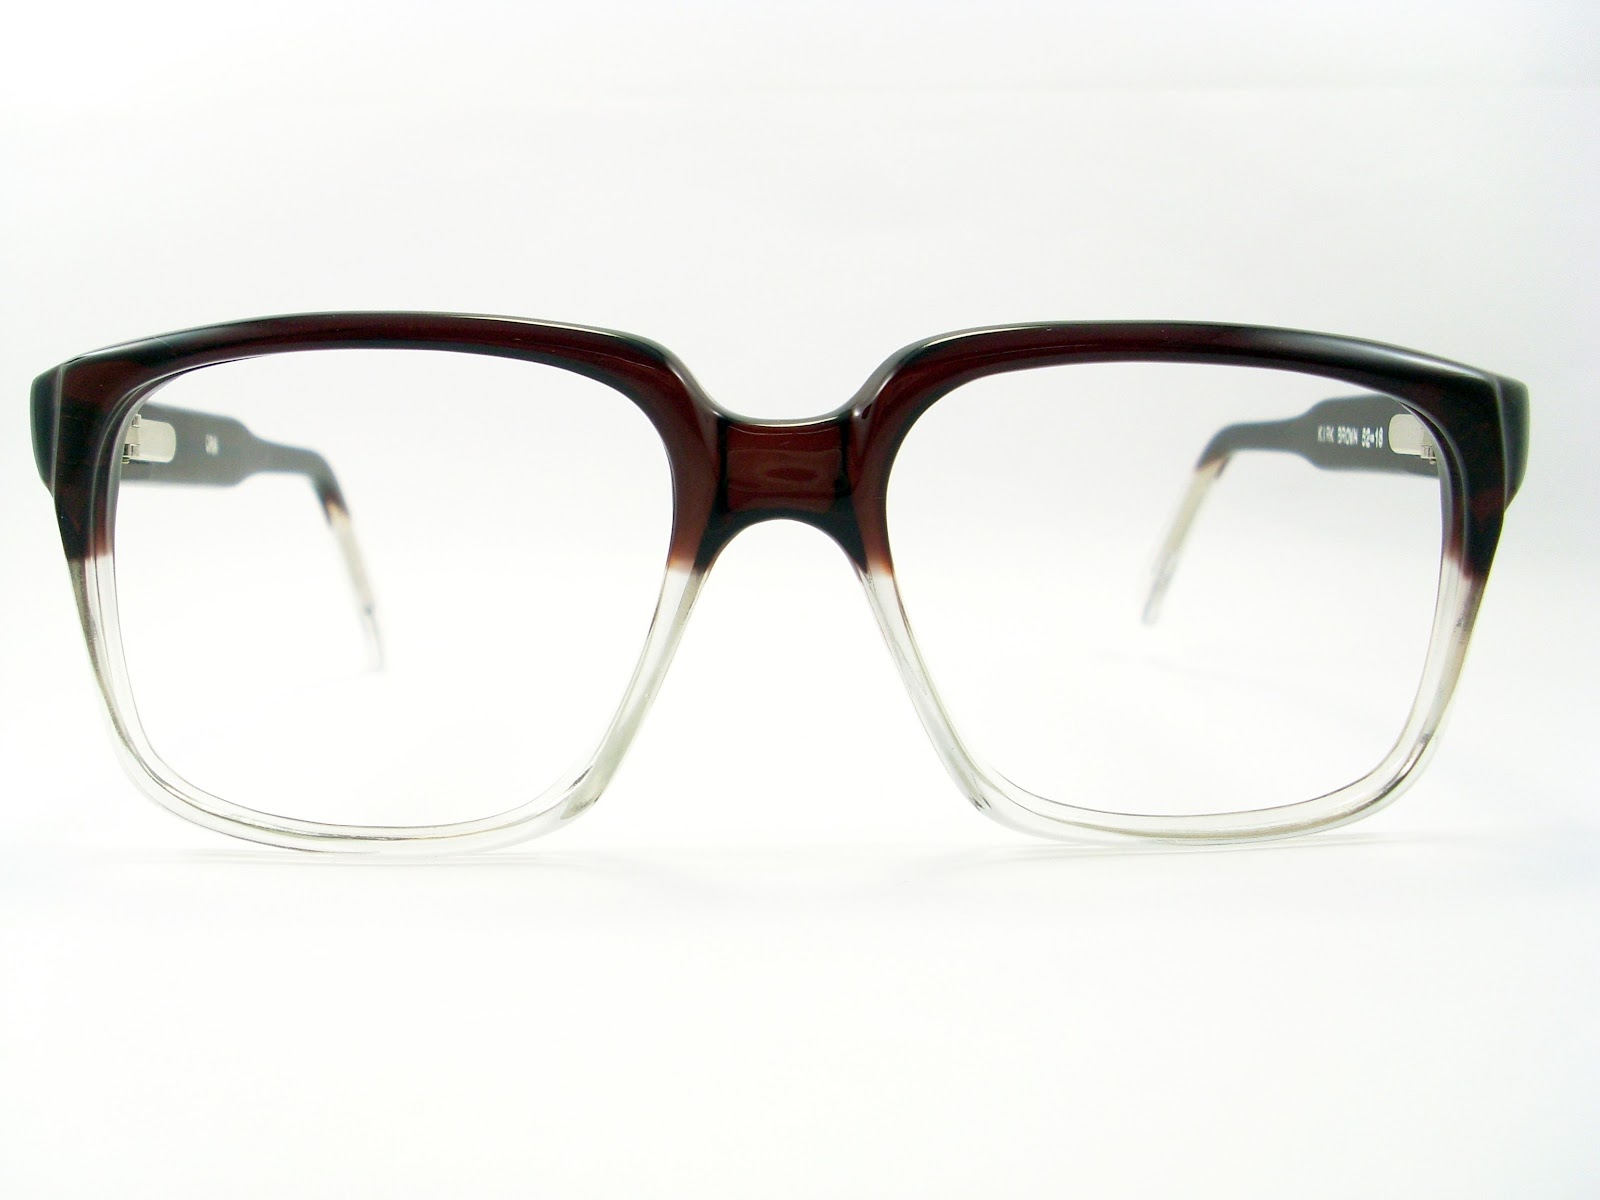 Eyeglass Frames On Your Picture : Vintage Eyeglasses Frames Eyewear Sunglasses 50S: Vintage ...